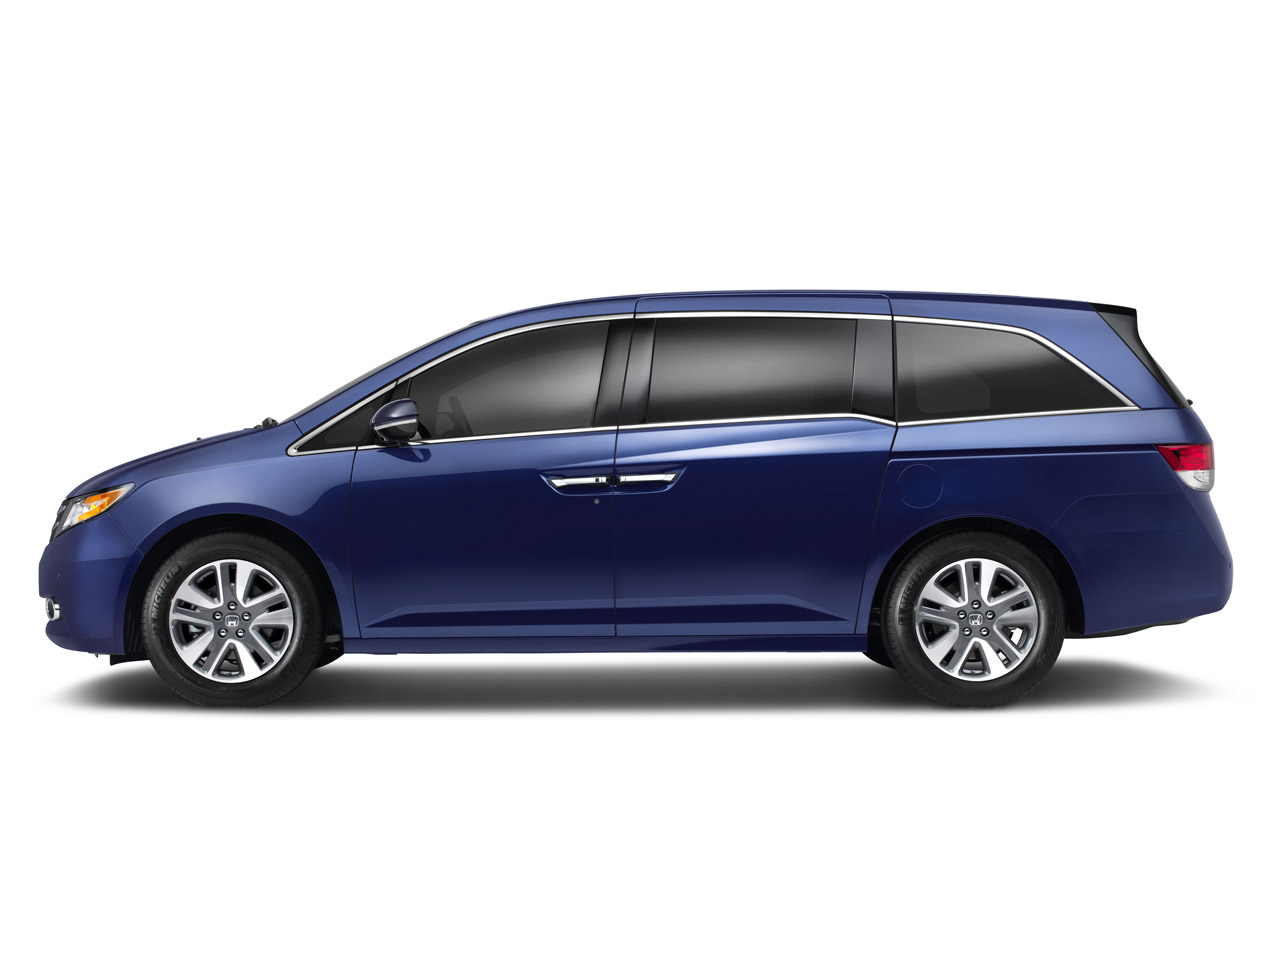 2014 honda odyssey set to clean up in ny with world 39 s first in car vacuum update autoblog. Black Bedroom Furniture Sets. Home Design Ideas